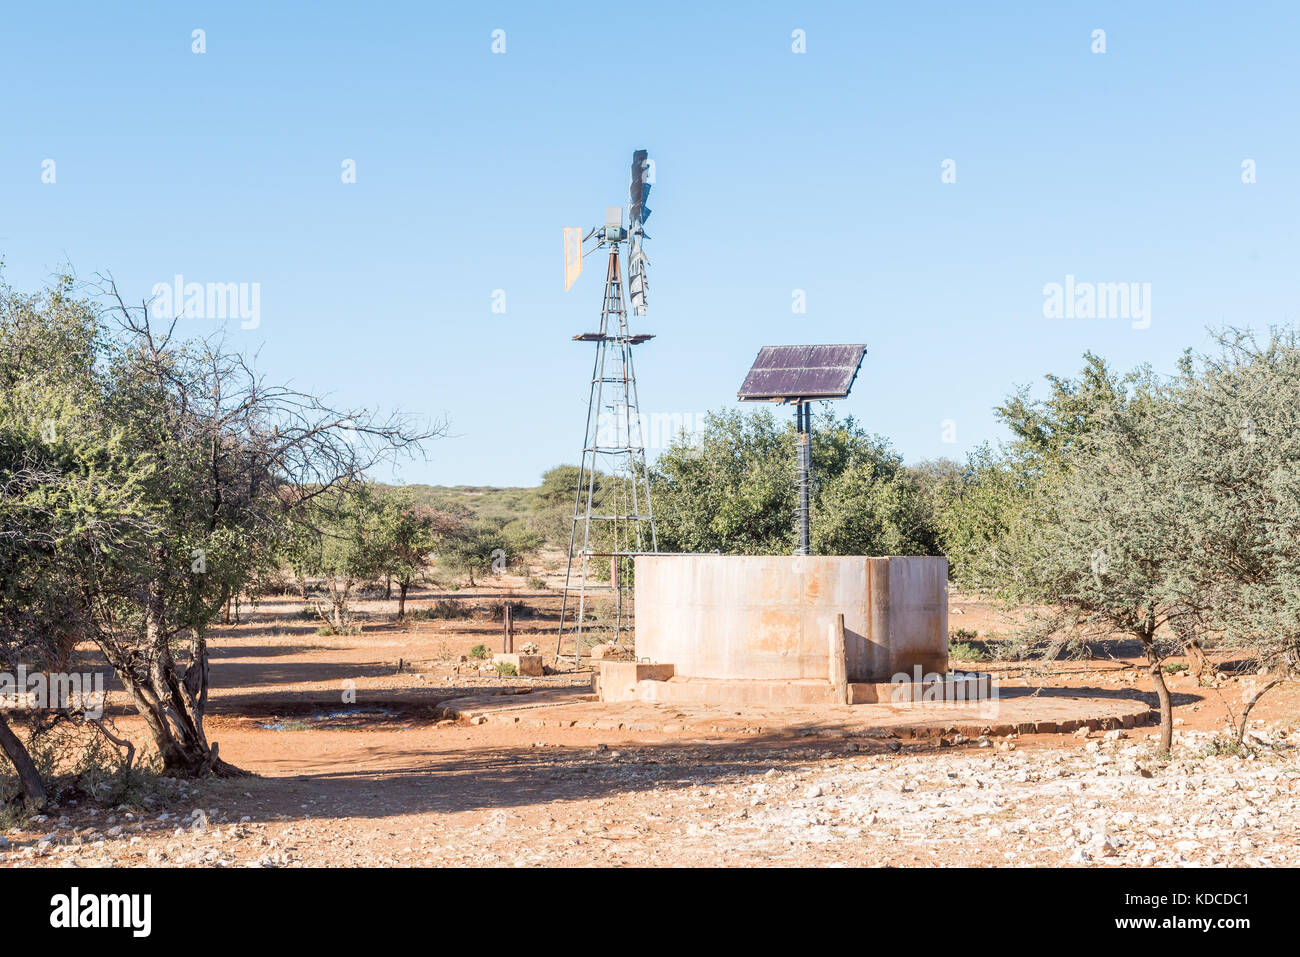 A water-pumping windmill and solar panels for a waterpump near Schmidtsfrift, a village in the Northern Cape Province - Stock Image